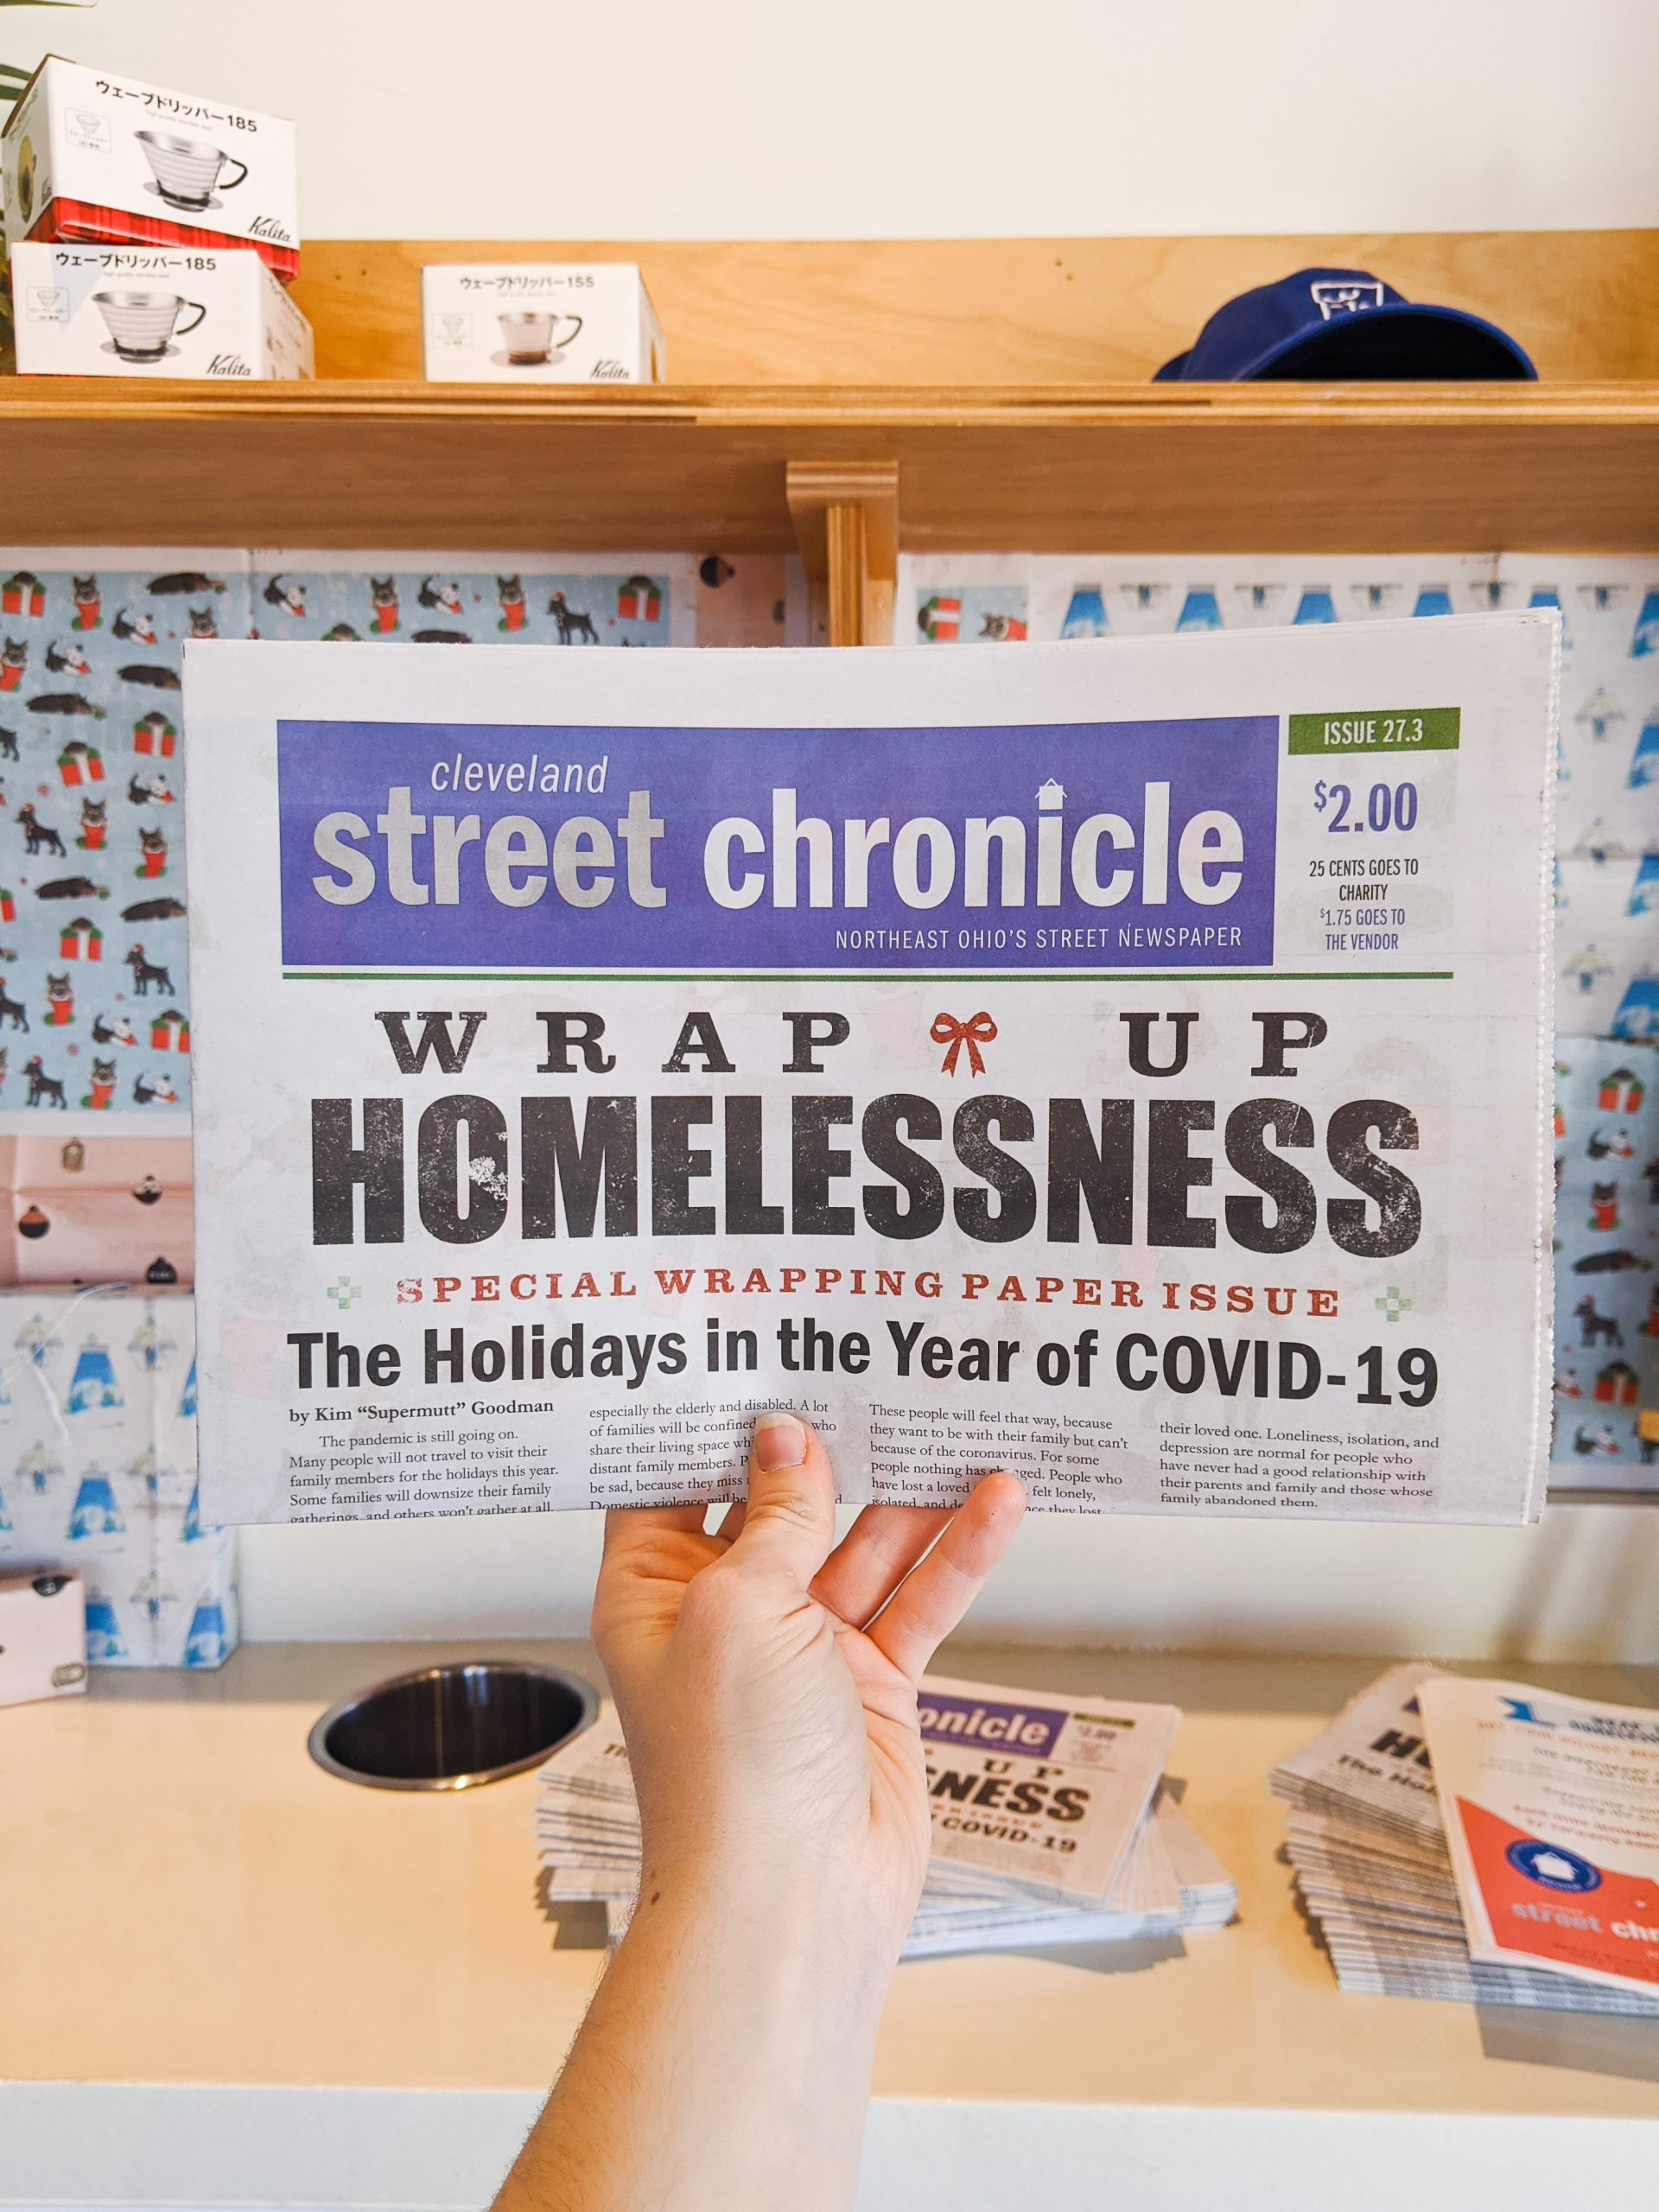 3-19 and NEO Coalition for the Homeless team up for the Holidays